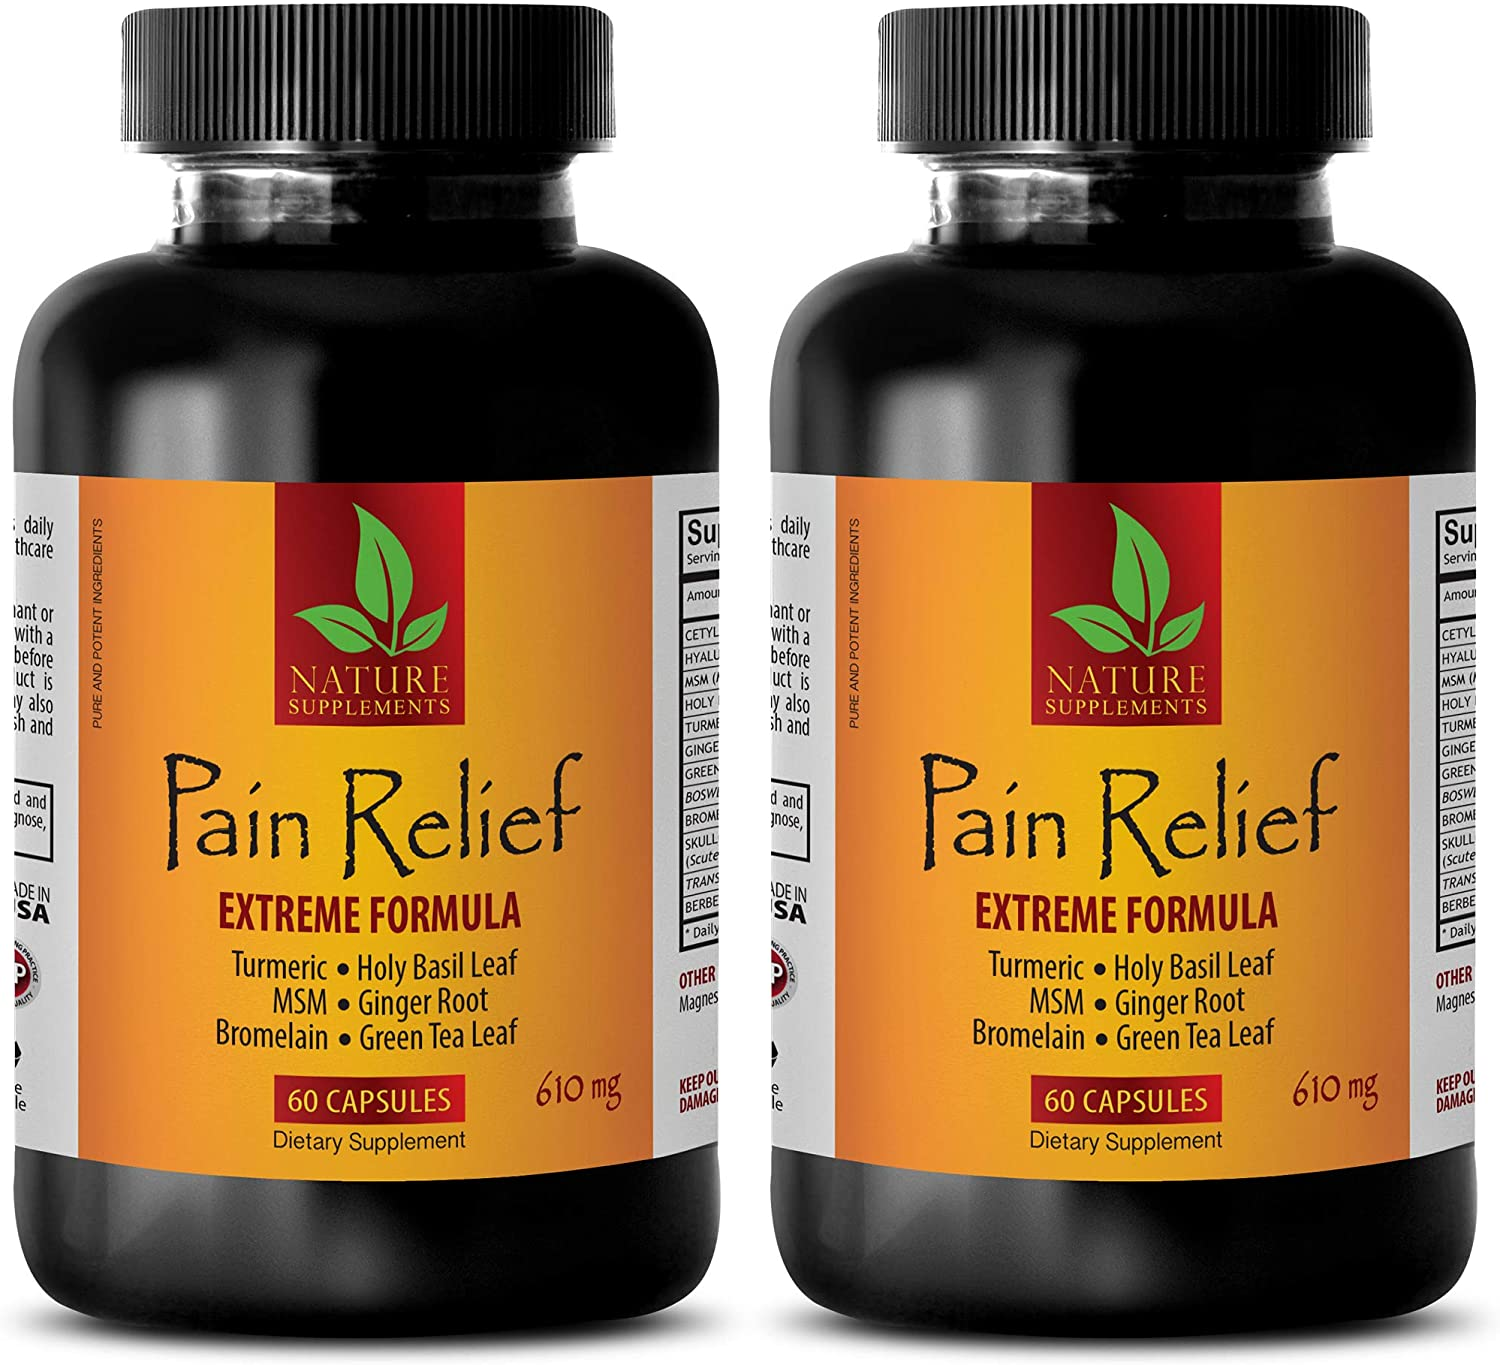 Anti inflammatory Supplement Back Pain Ext - 610MG famous OFFicial Relief